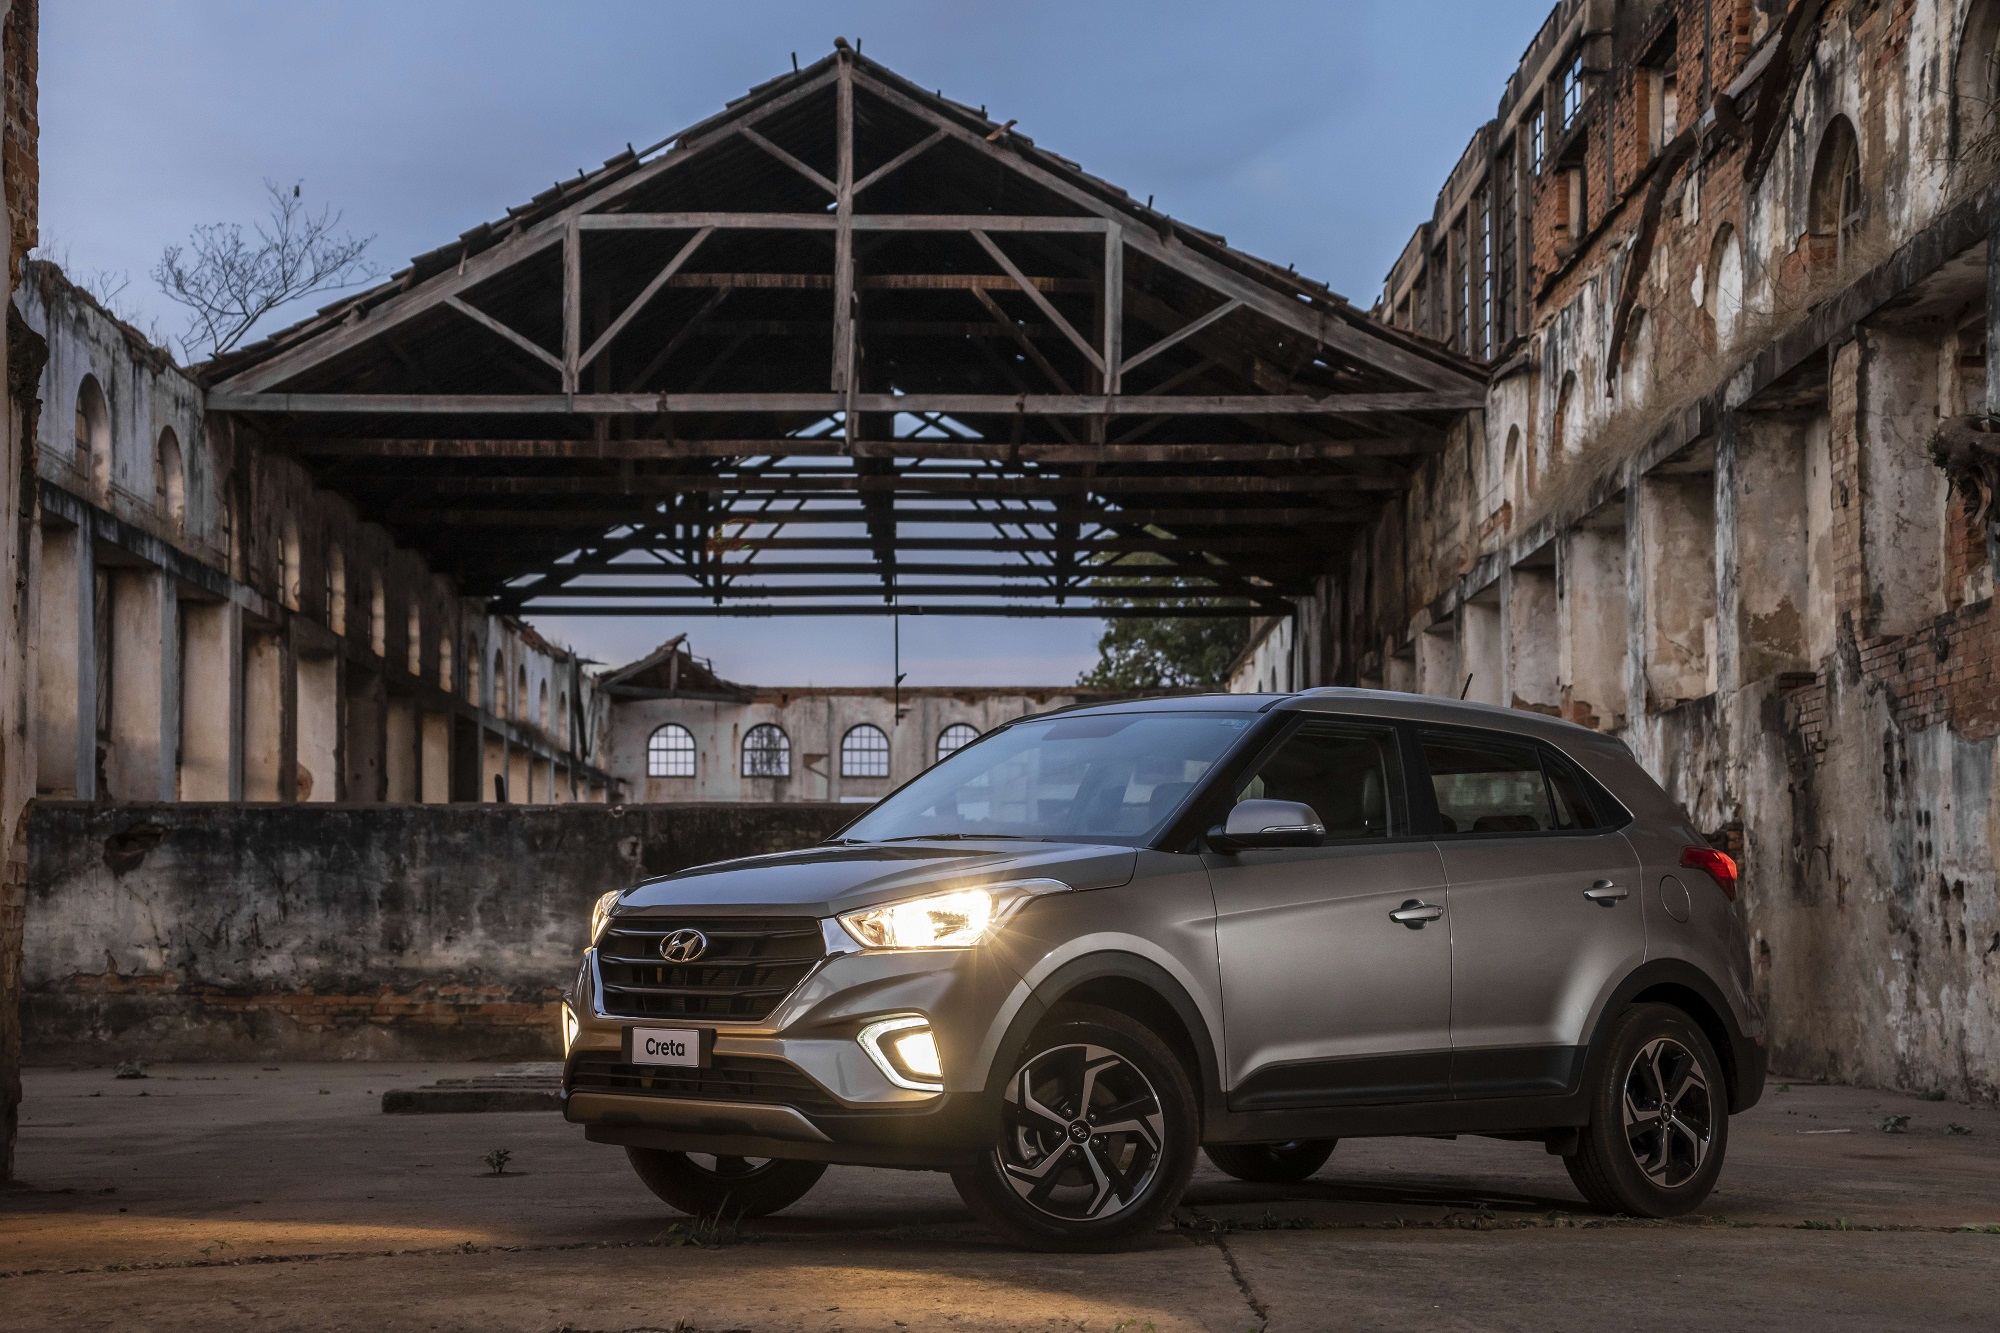 Smart Plus 1.6 AT é a nova configuração intermediária do Hyundai Creta 2021